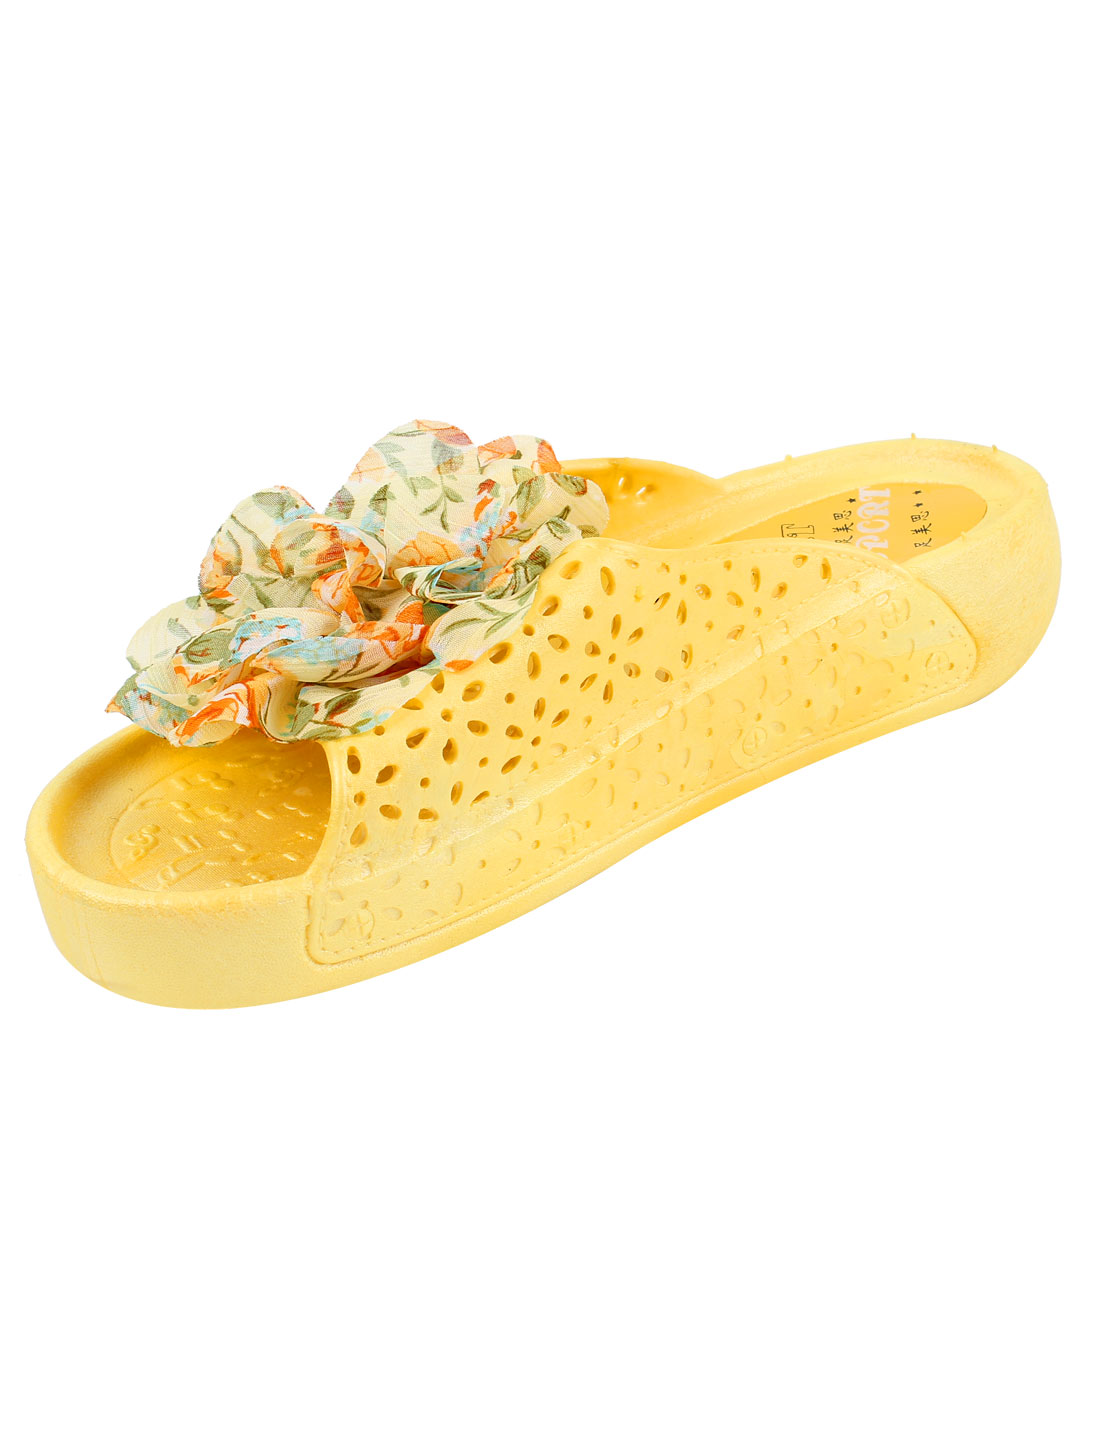 Ladies Hollow Out Flower Non-skid Plastic Slippers Flip Flop Yellow Pair US 7.5